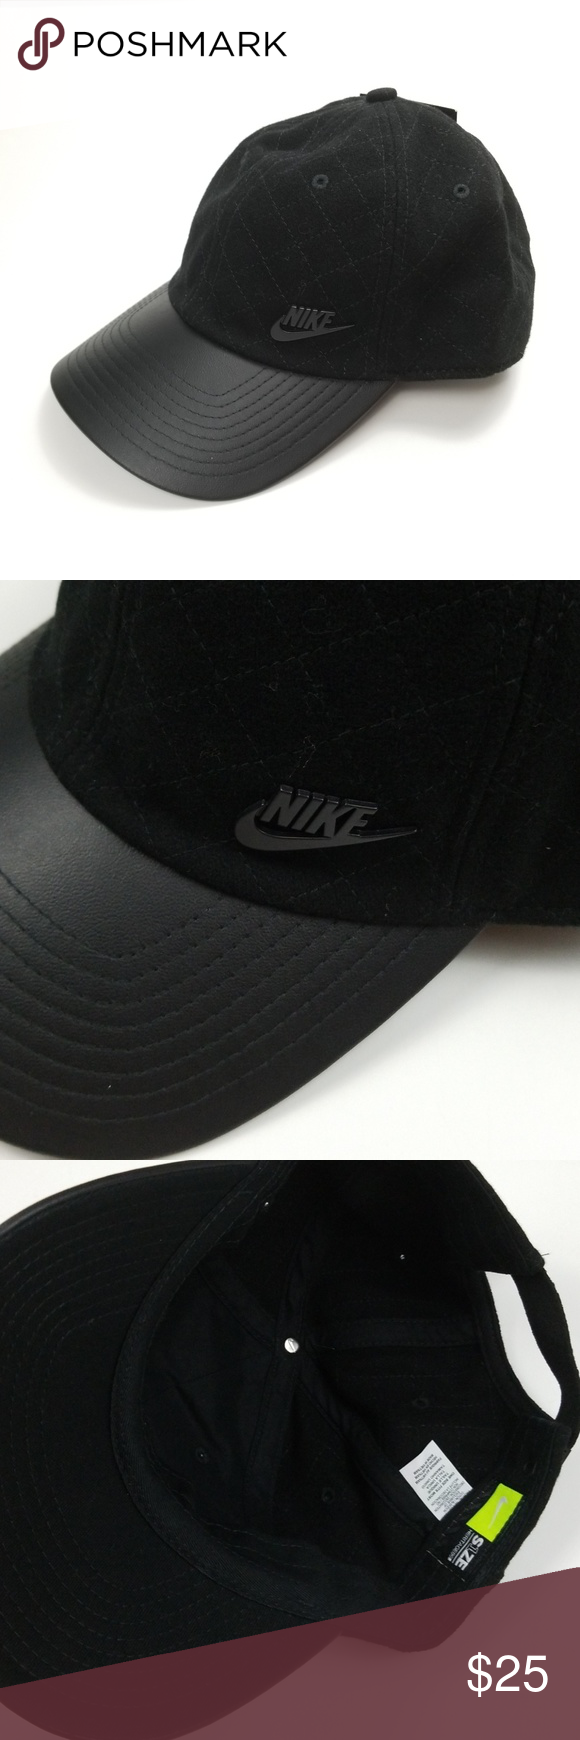 f39d7e82311 Nike quilted top baseball  dad hat. One size fits most. Faux leather  detail. Bundle up! Offers always welcome! Nike Accessories Hats